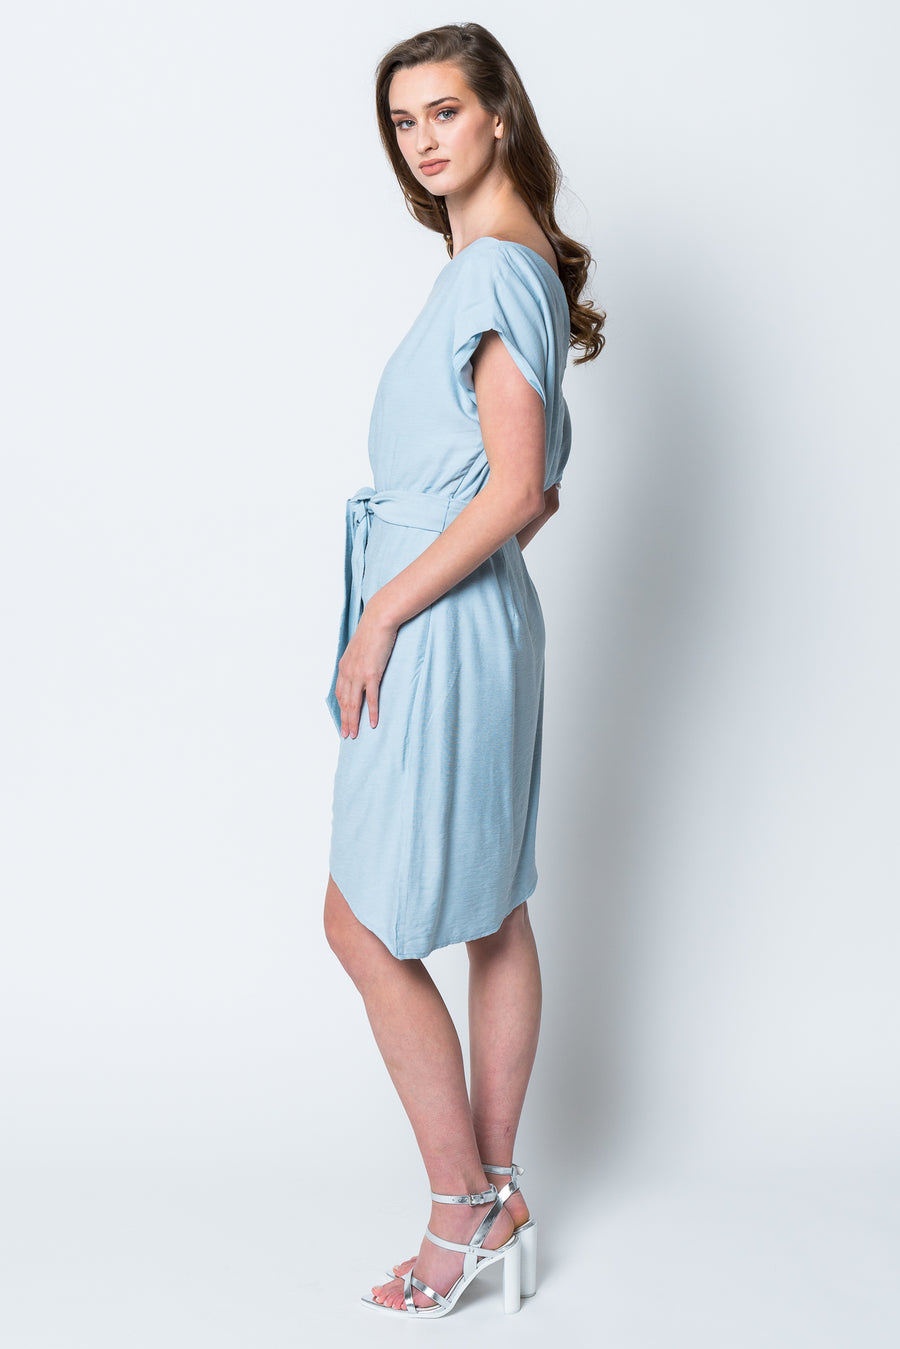 c91baffb86b Wish Arcadia Dress in Light Blue